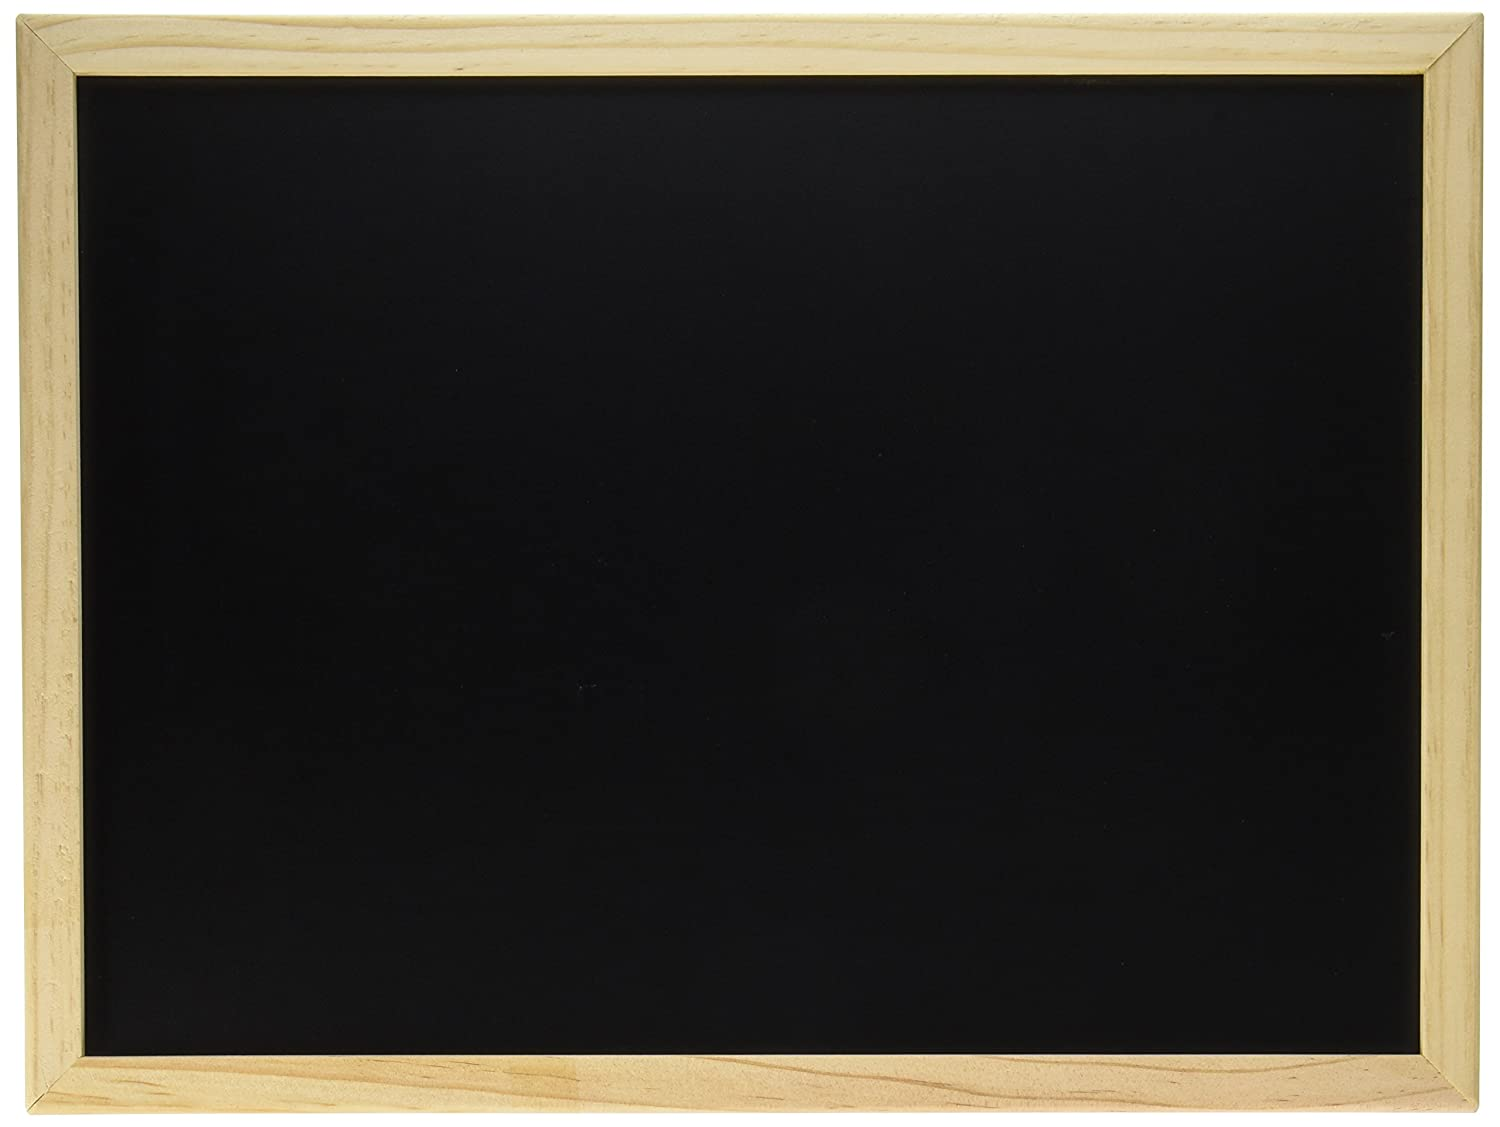 Darice 9172-76 Black Board with Wood Frame, 12 by 16-Inch